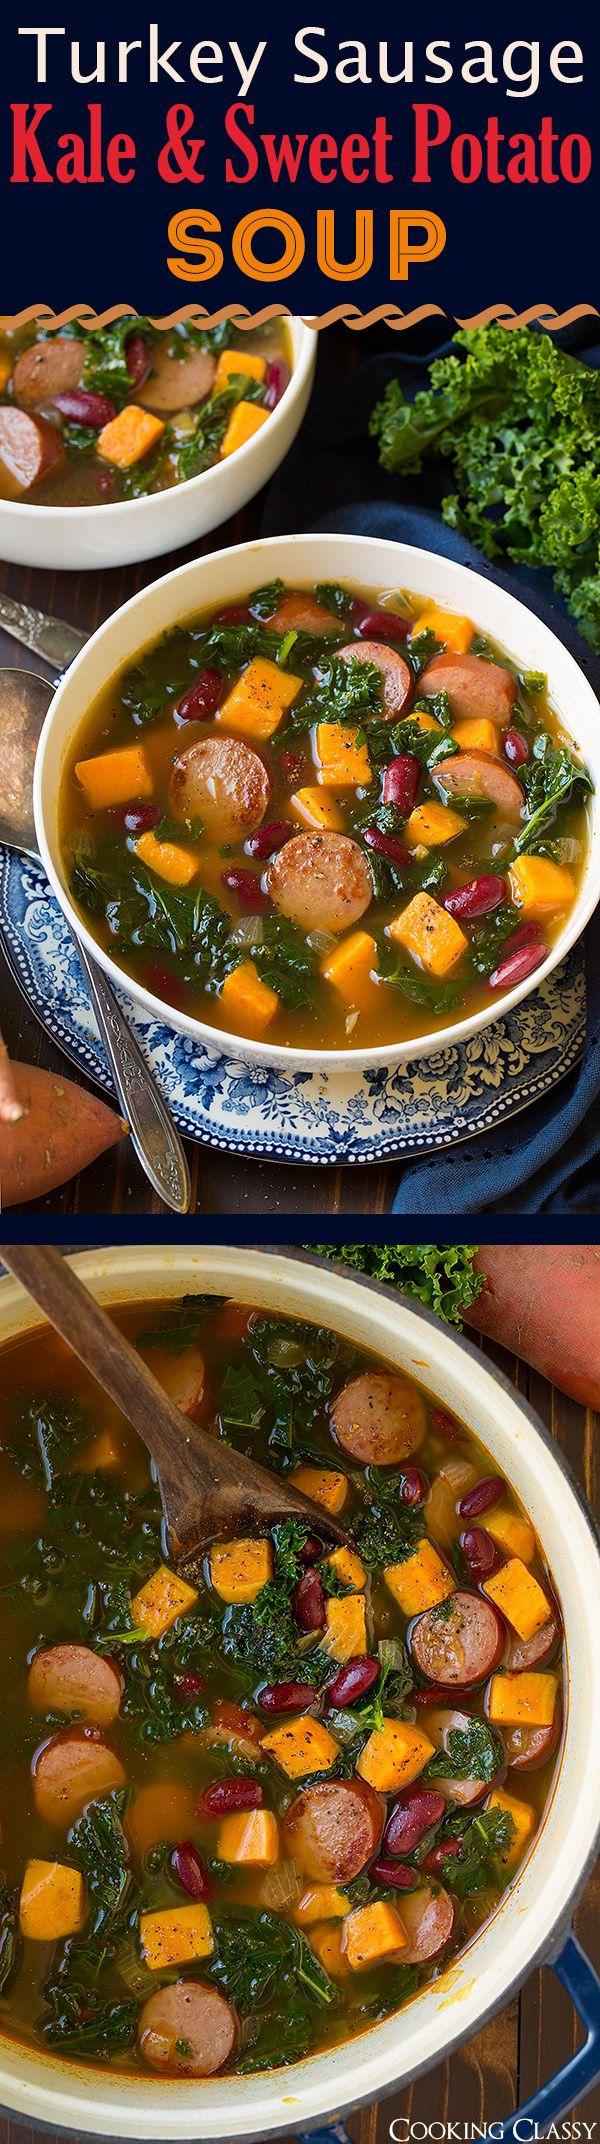 turkey sausage kale and sweet potato soup turkey sausage kale and ...